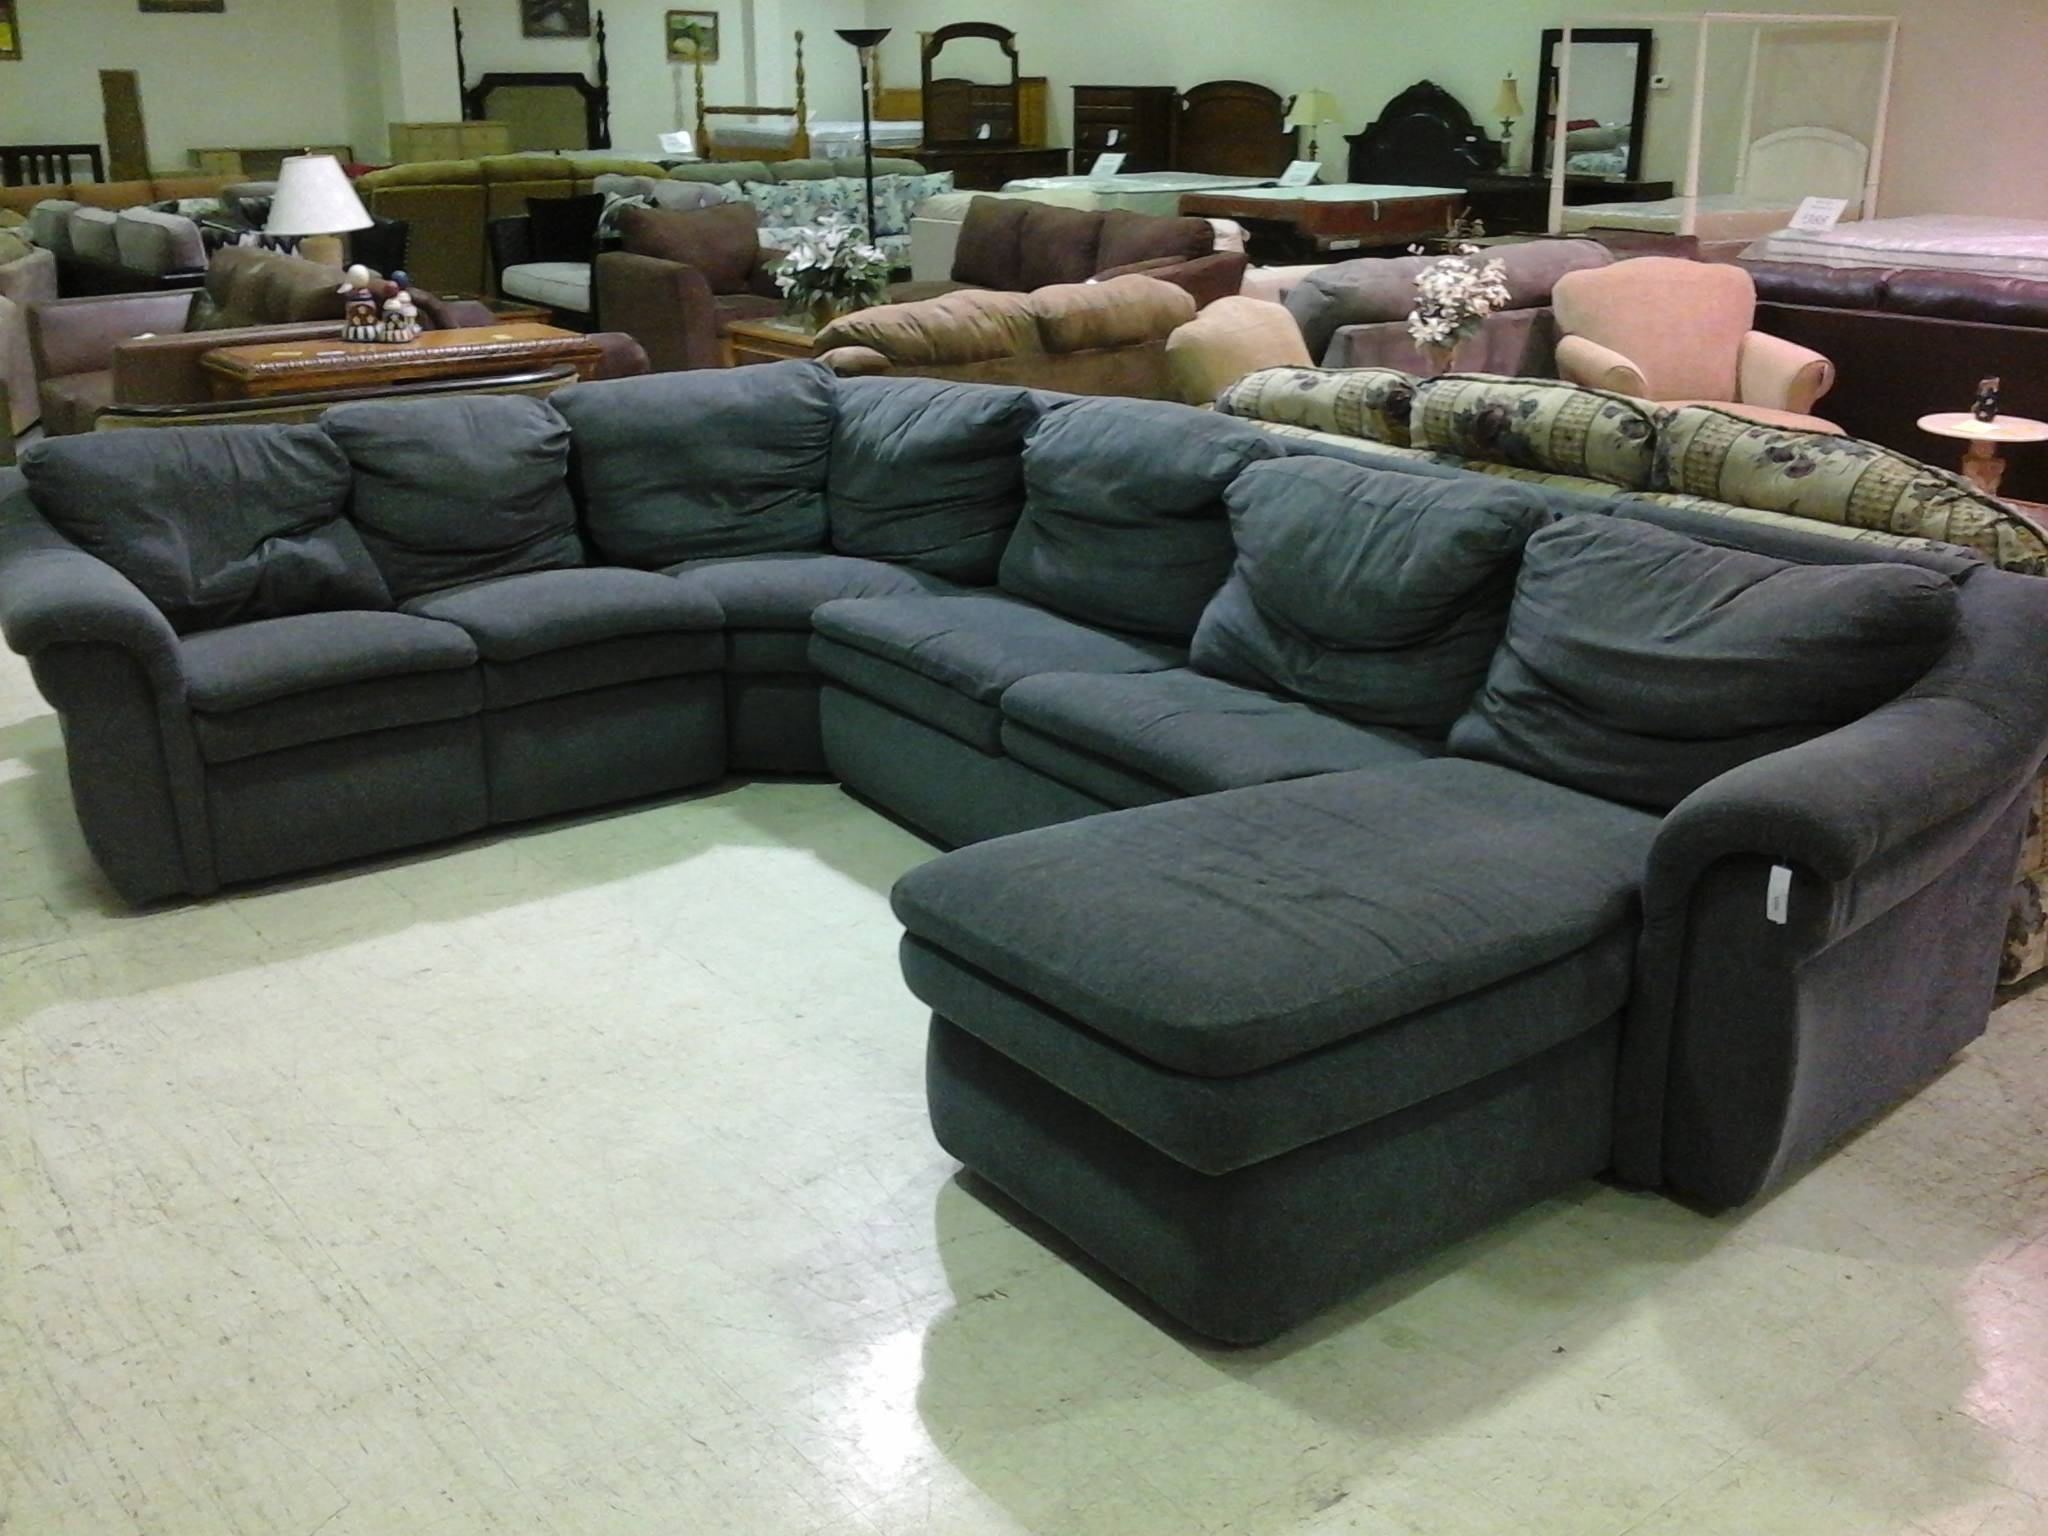 Cozy Sectional Sofa With Chaise Lounge And Recliner 51 About in Short Sectional Sofas (Image 5 of 15)